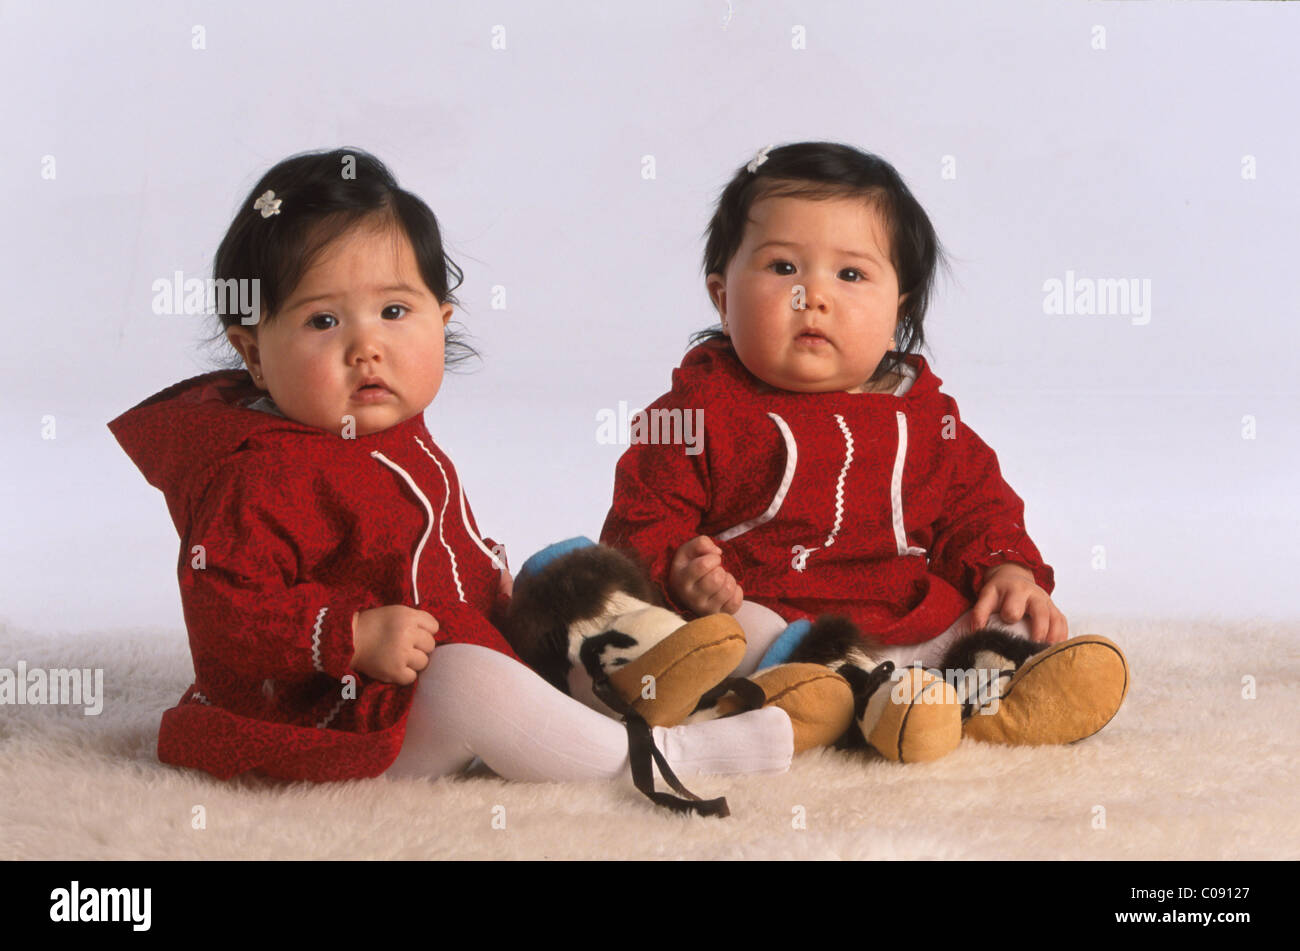 Yupik Children Stock Photos & Yupik Children Stock Images - Alamy